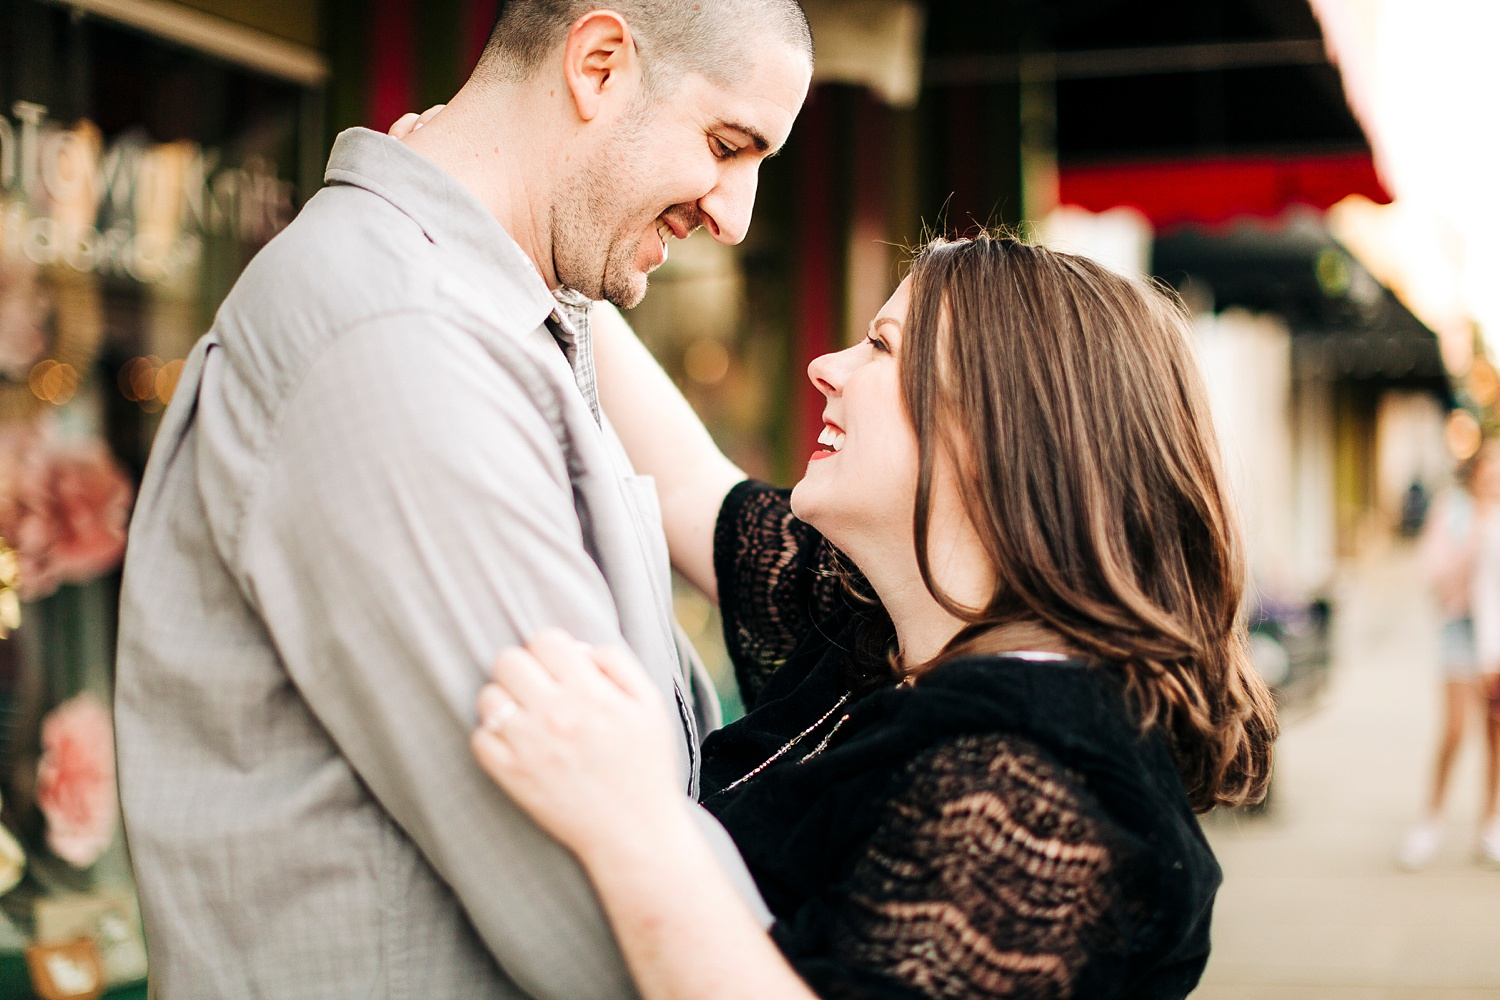 outdoor engagment session in downtown apex, north carolina